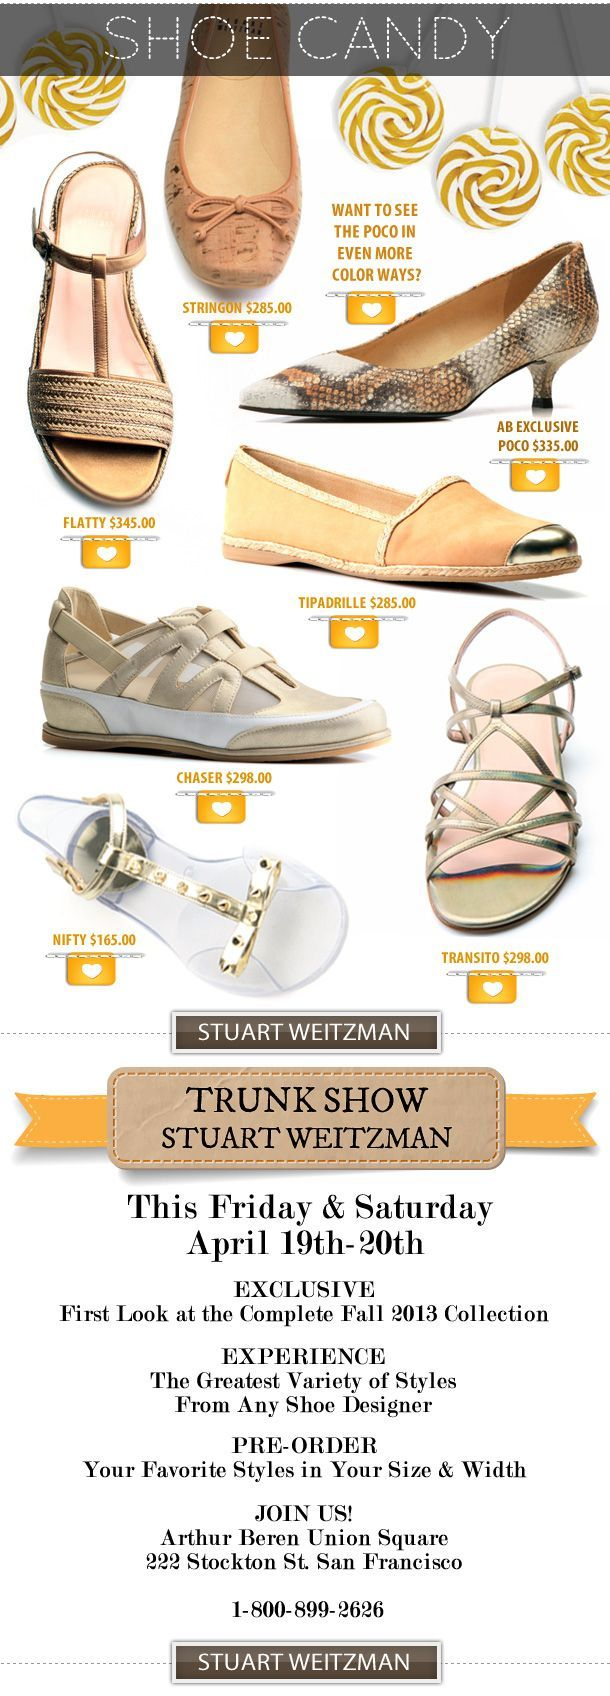 Happening Now Stuart Weitzman Trunk Show Photo booth